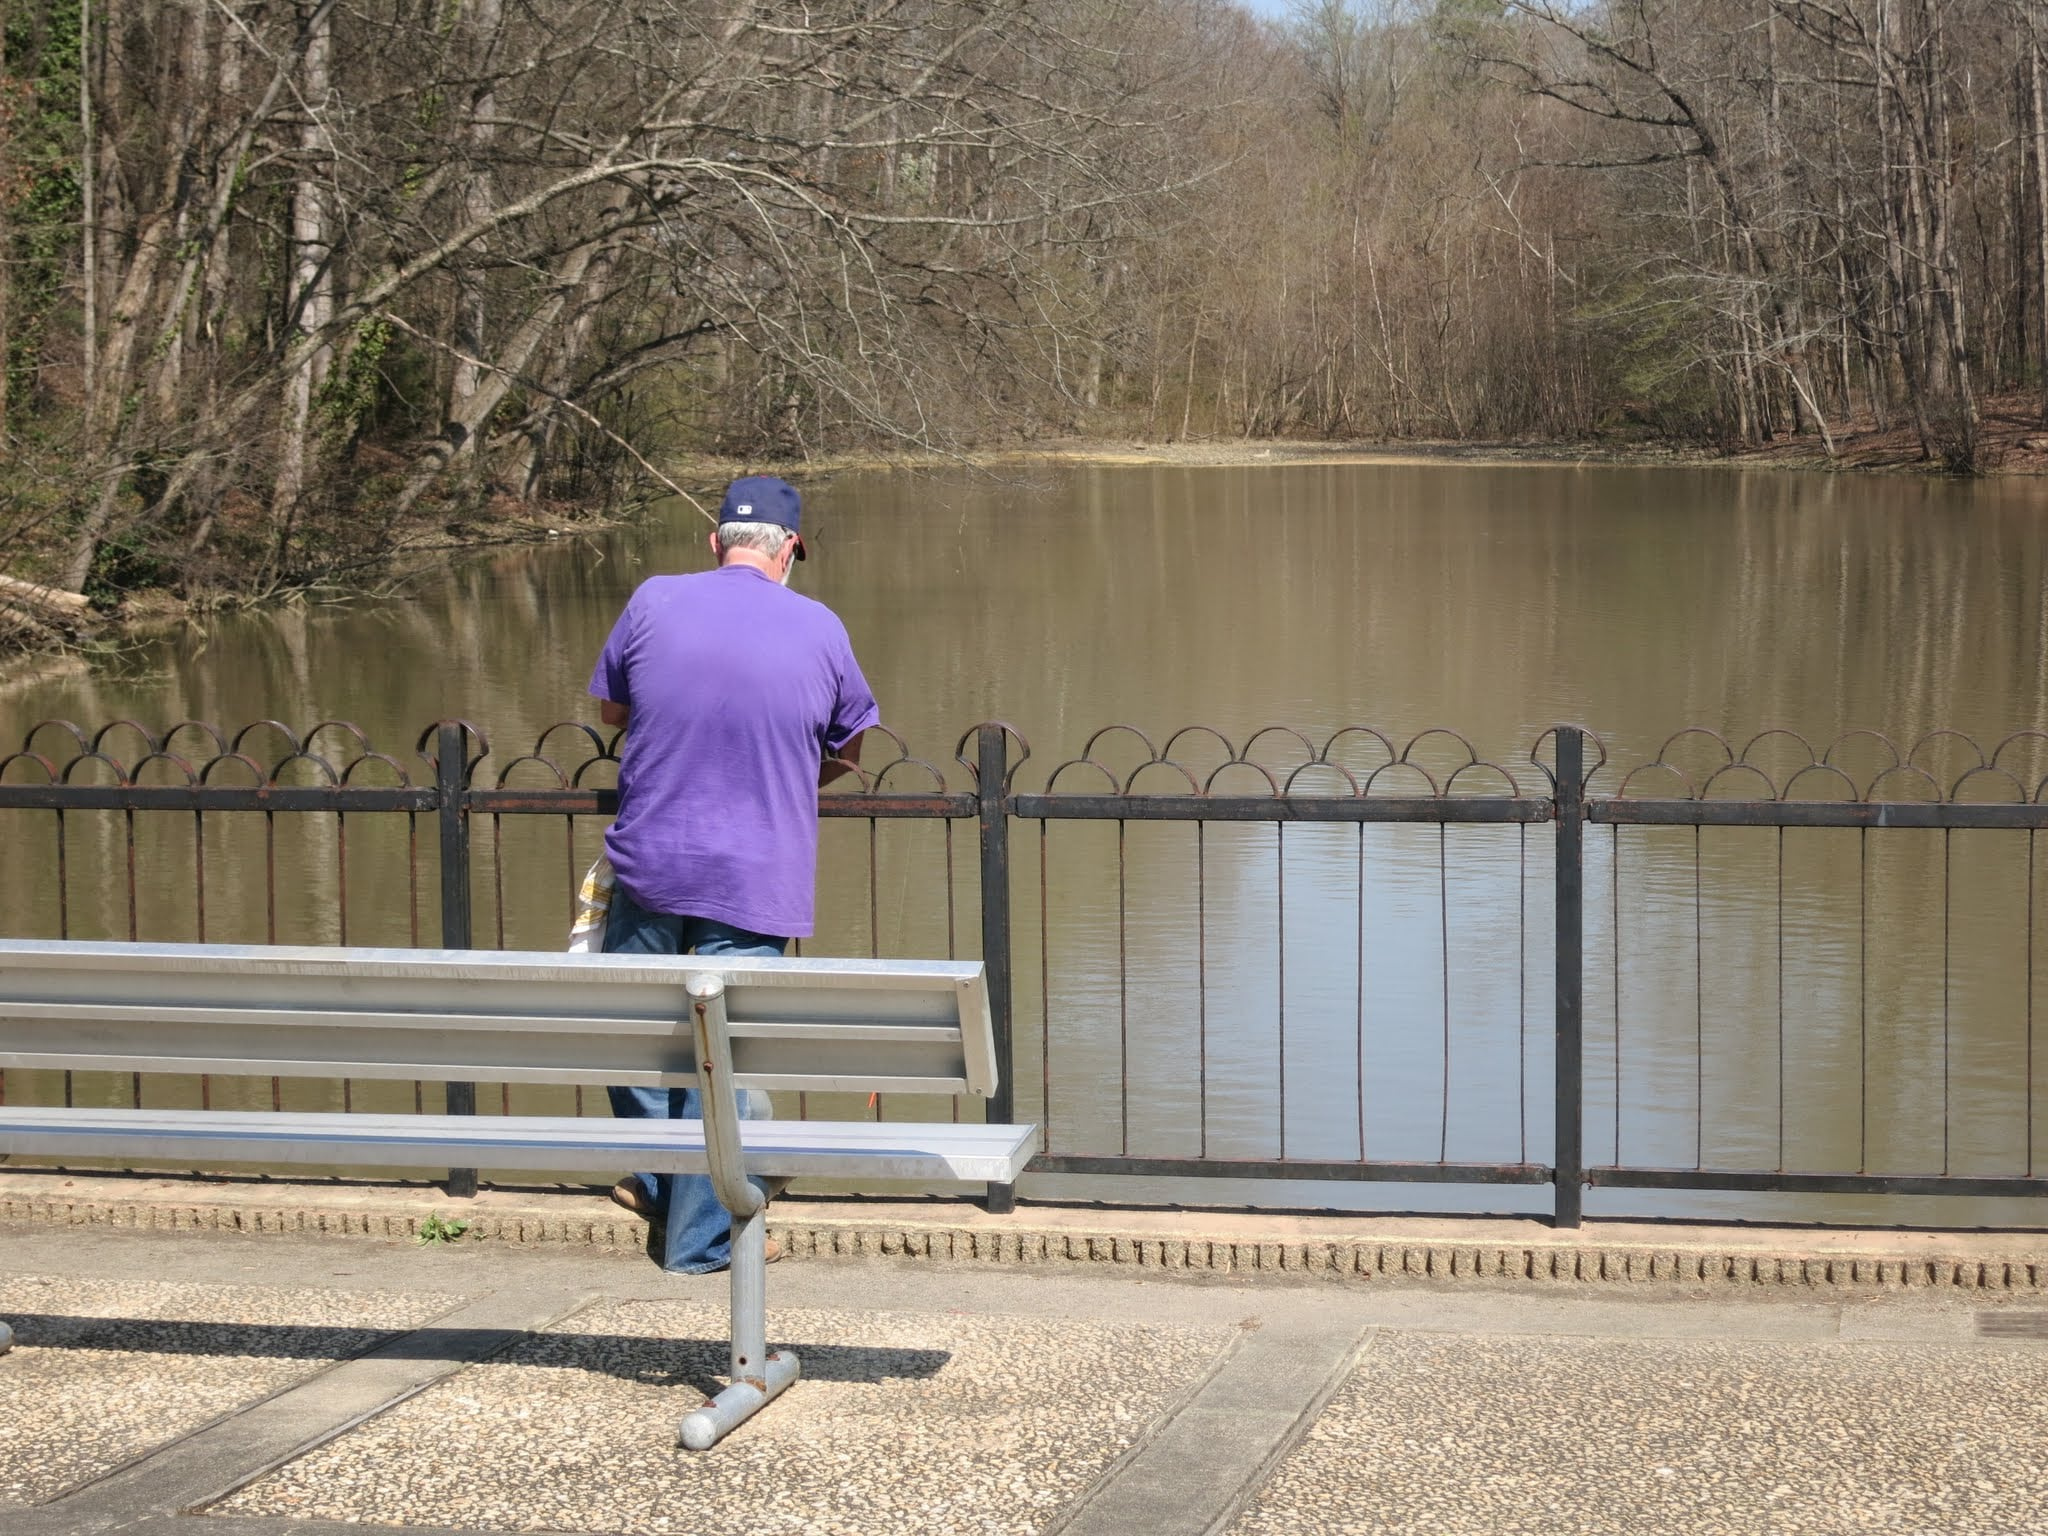 Cooper's Pond, Eastgate Park, Best Raleigh Neighborhoods, Parks and Trails, Midtown